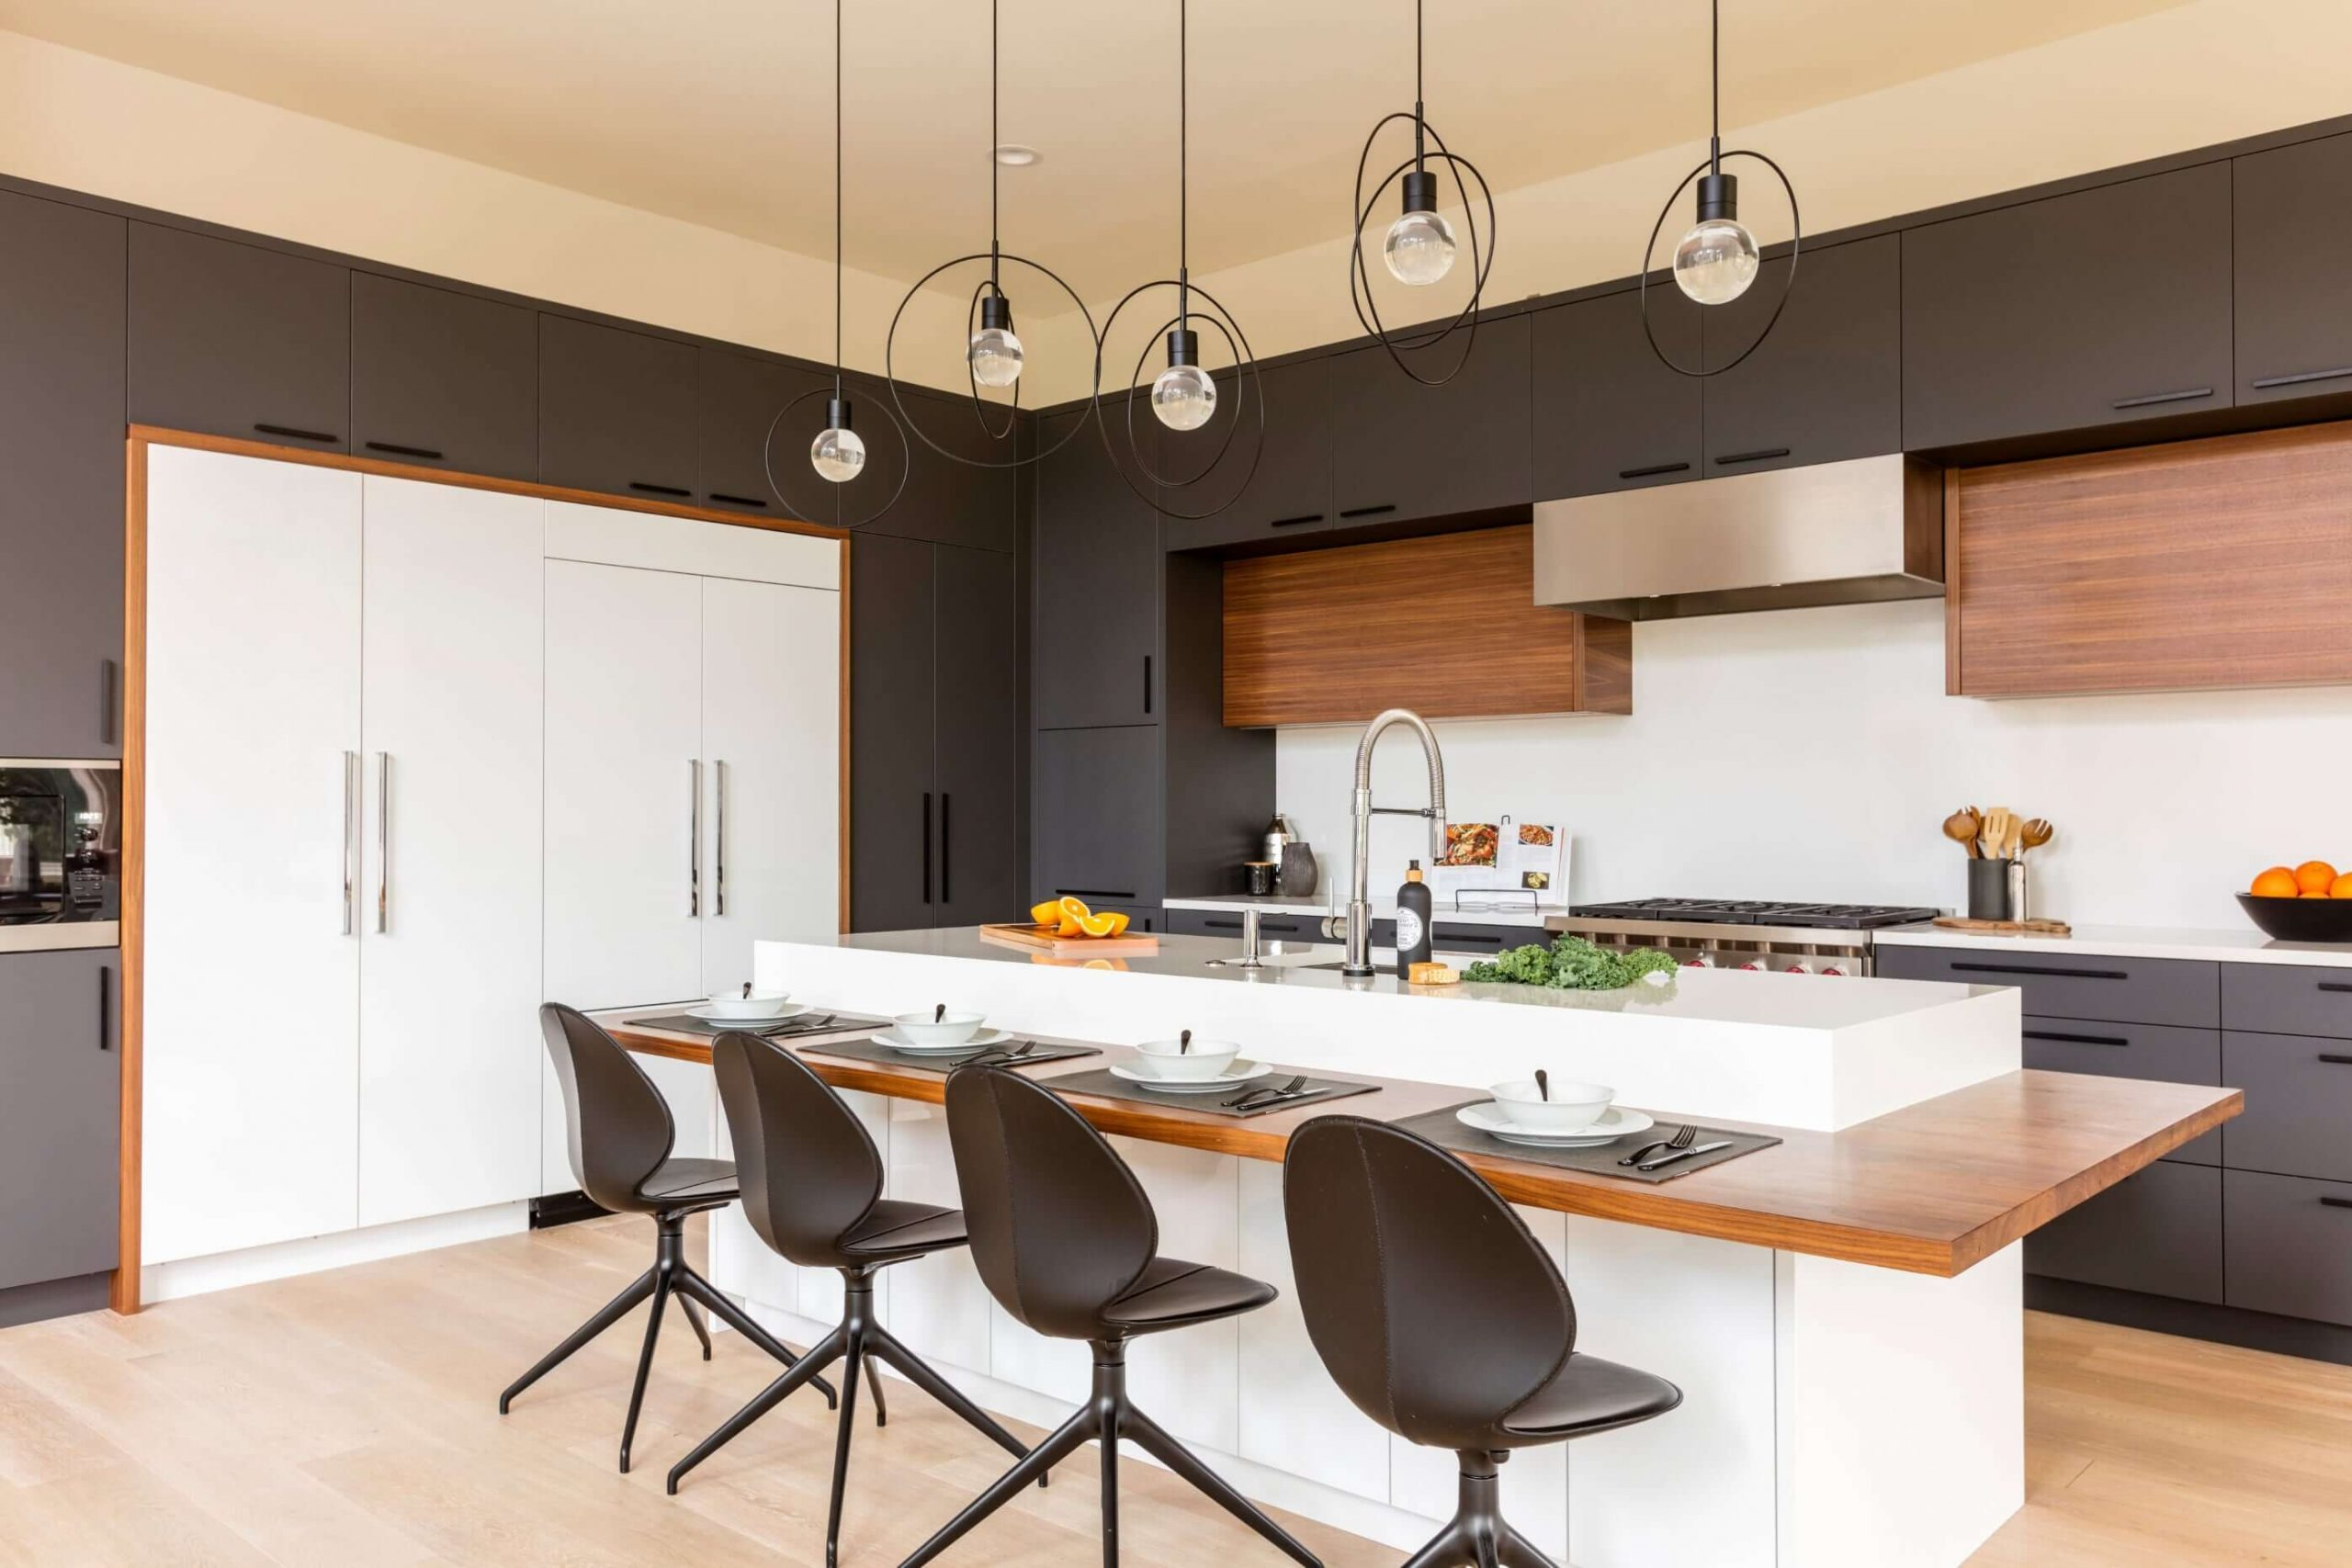 Design Tips to Take Your Kitchen to the Next Level